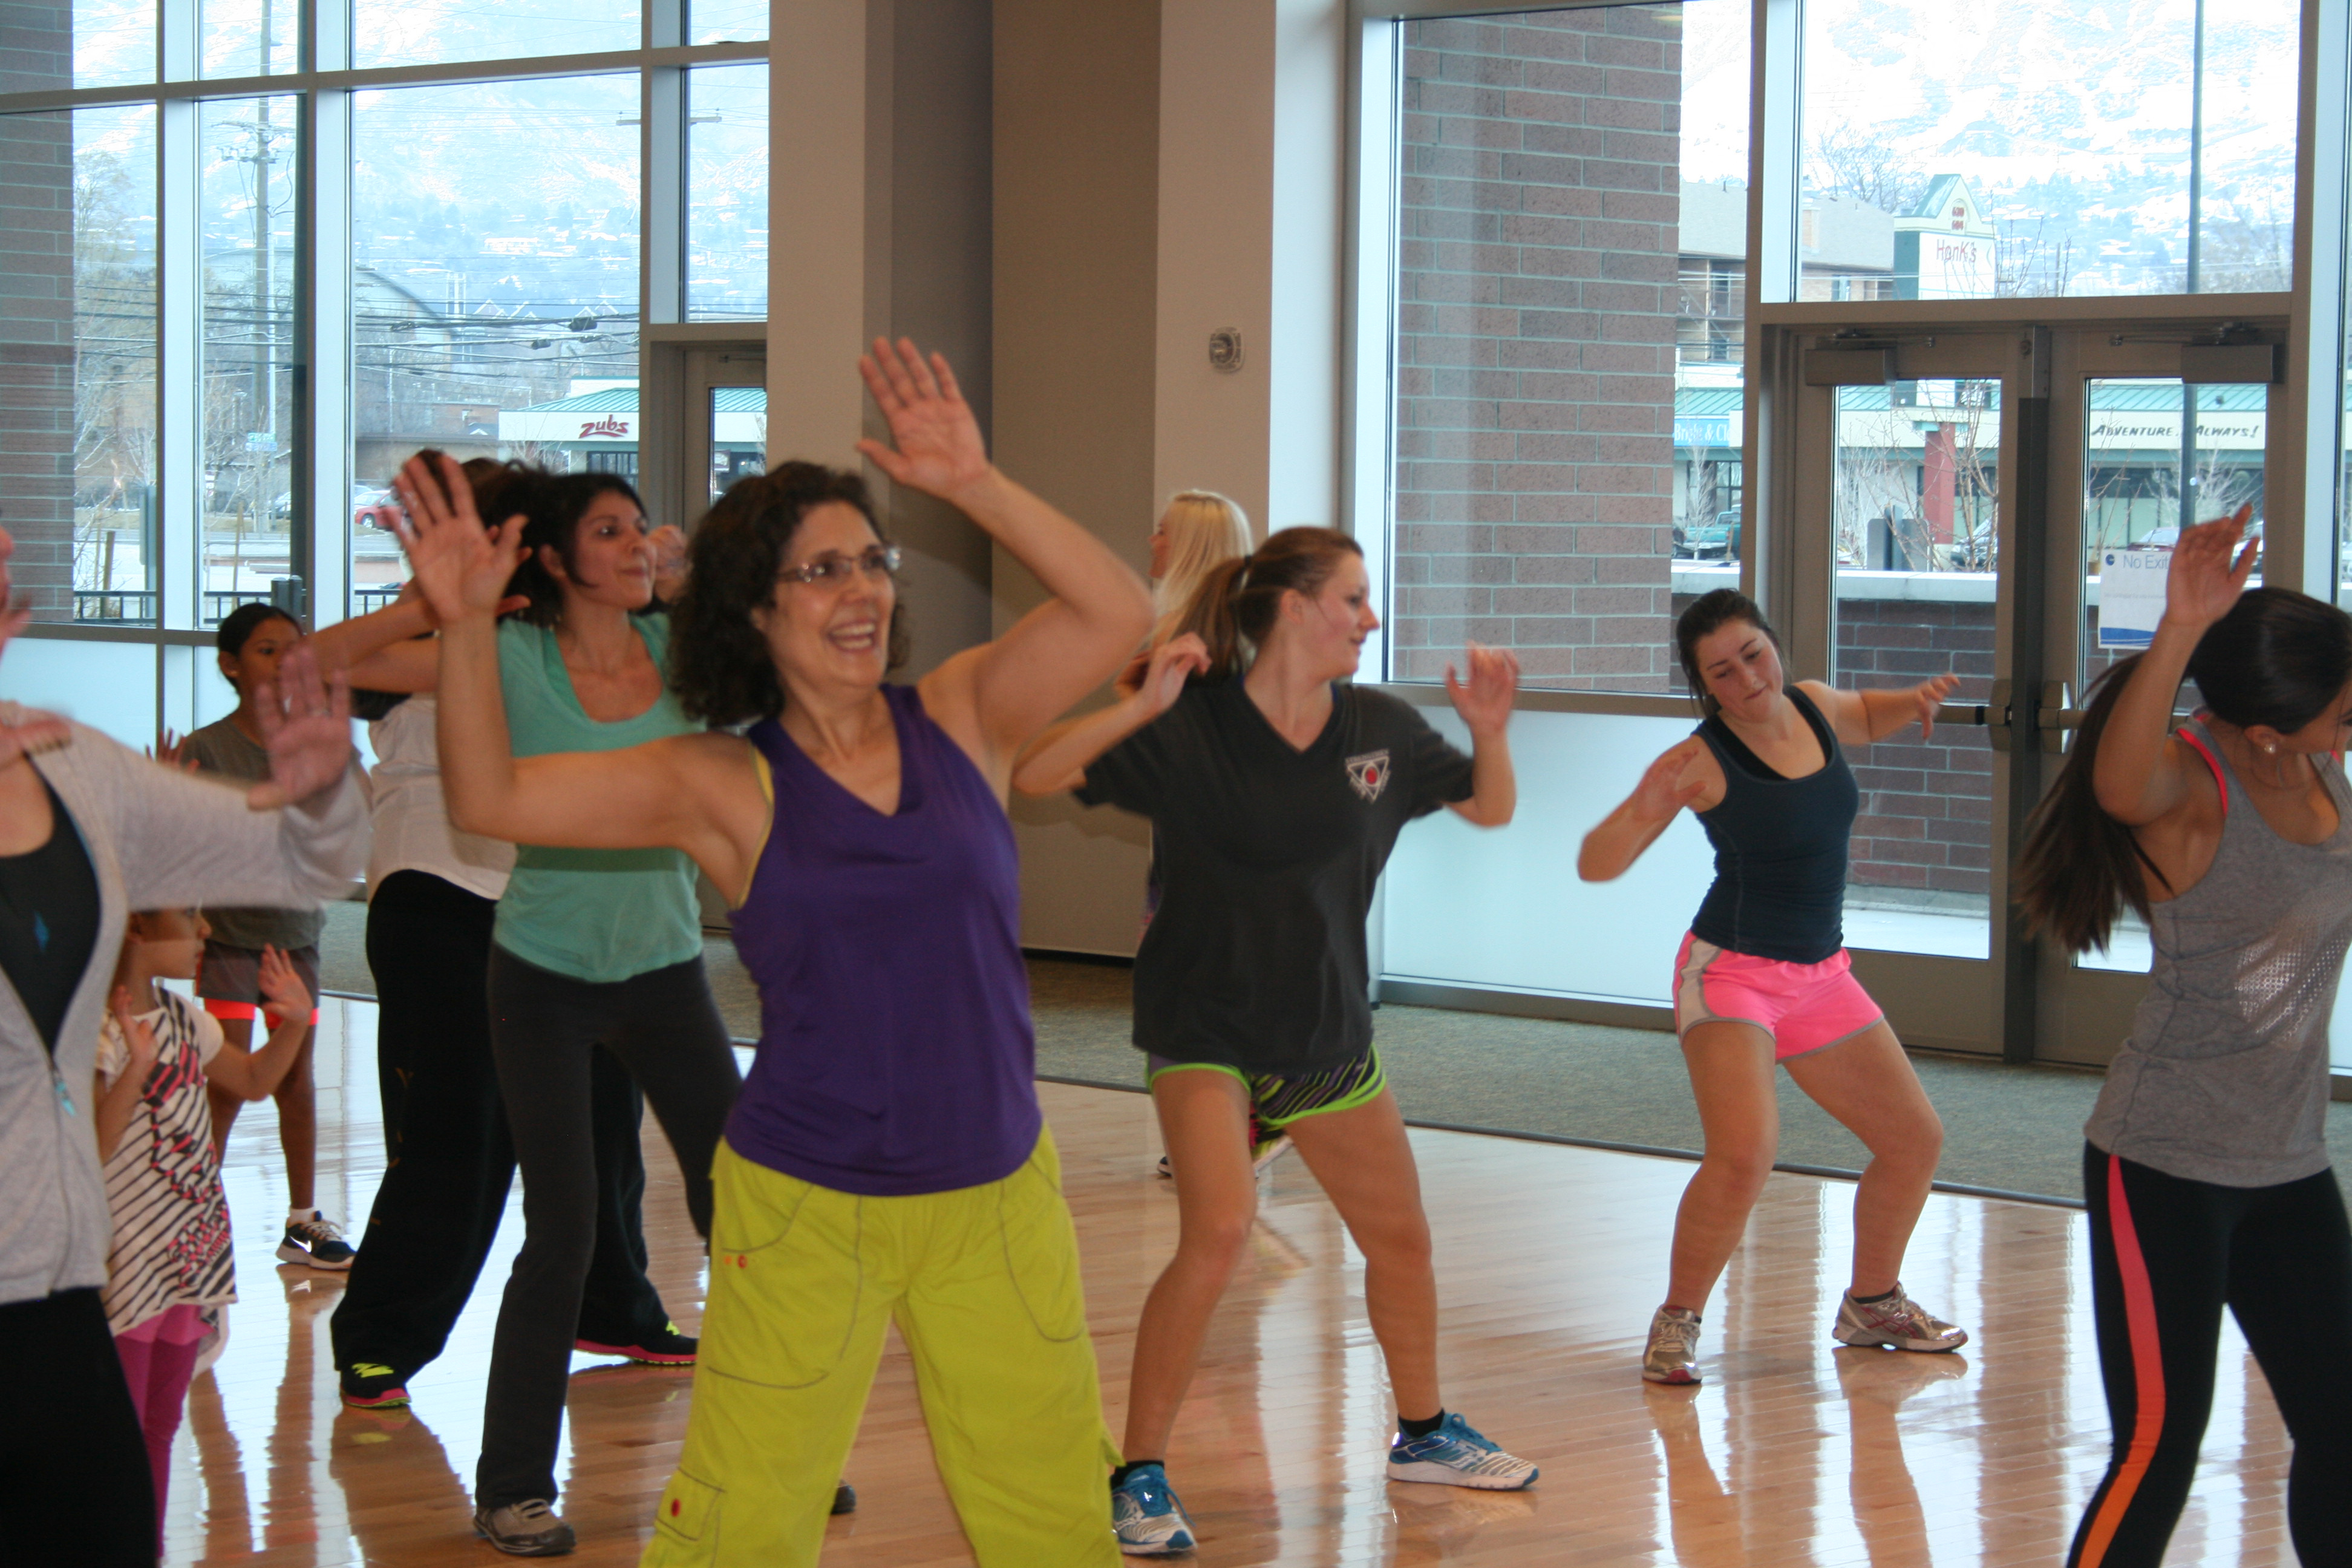 People of all ages danced during the Zumba class at Miss Provo's dance-a-thon. (Photo courteys of Sash Heaps.)